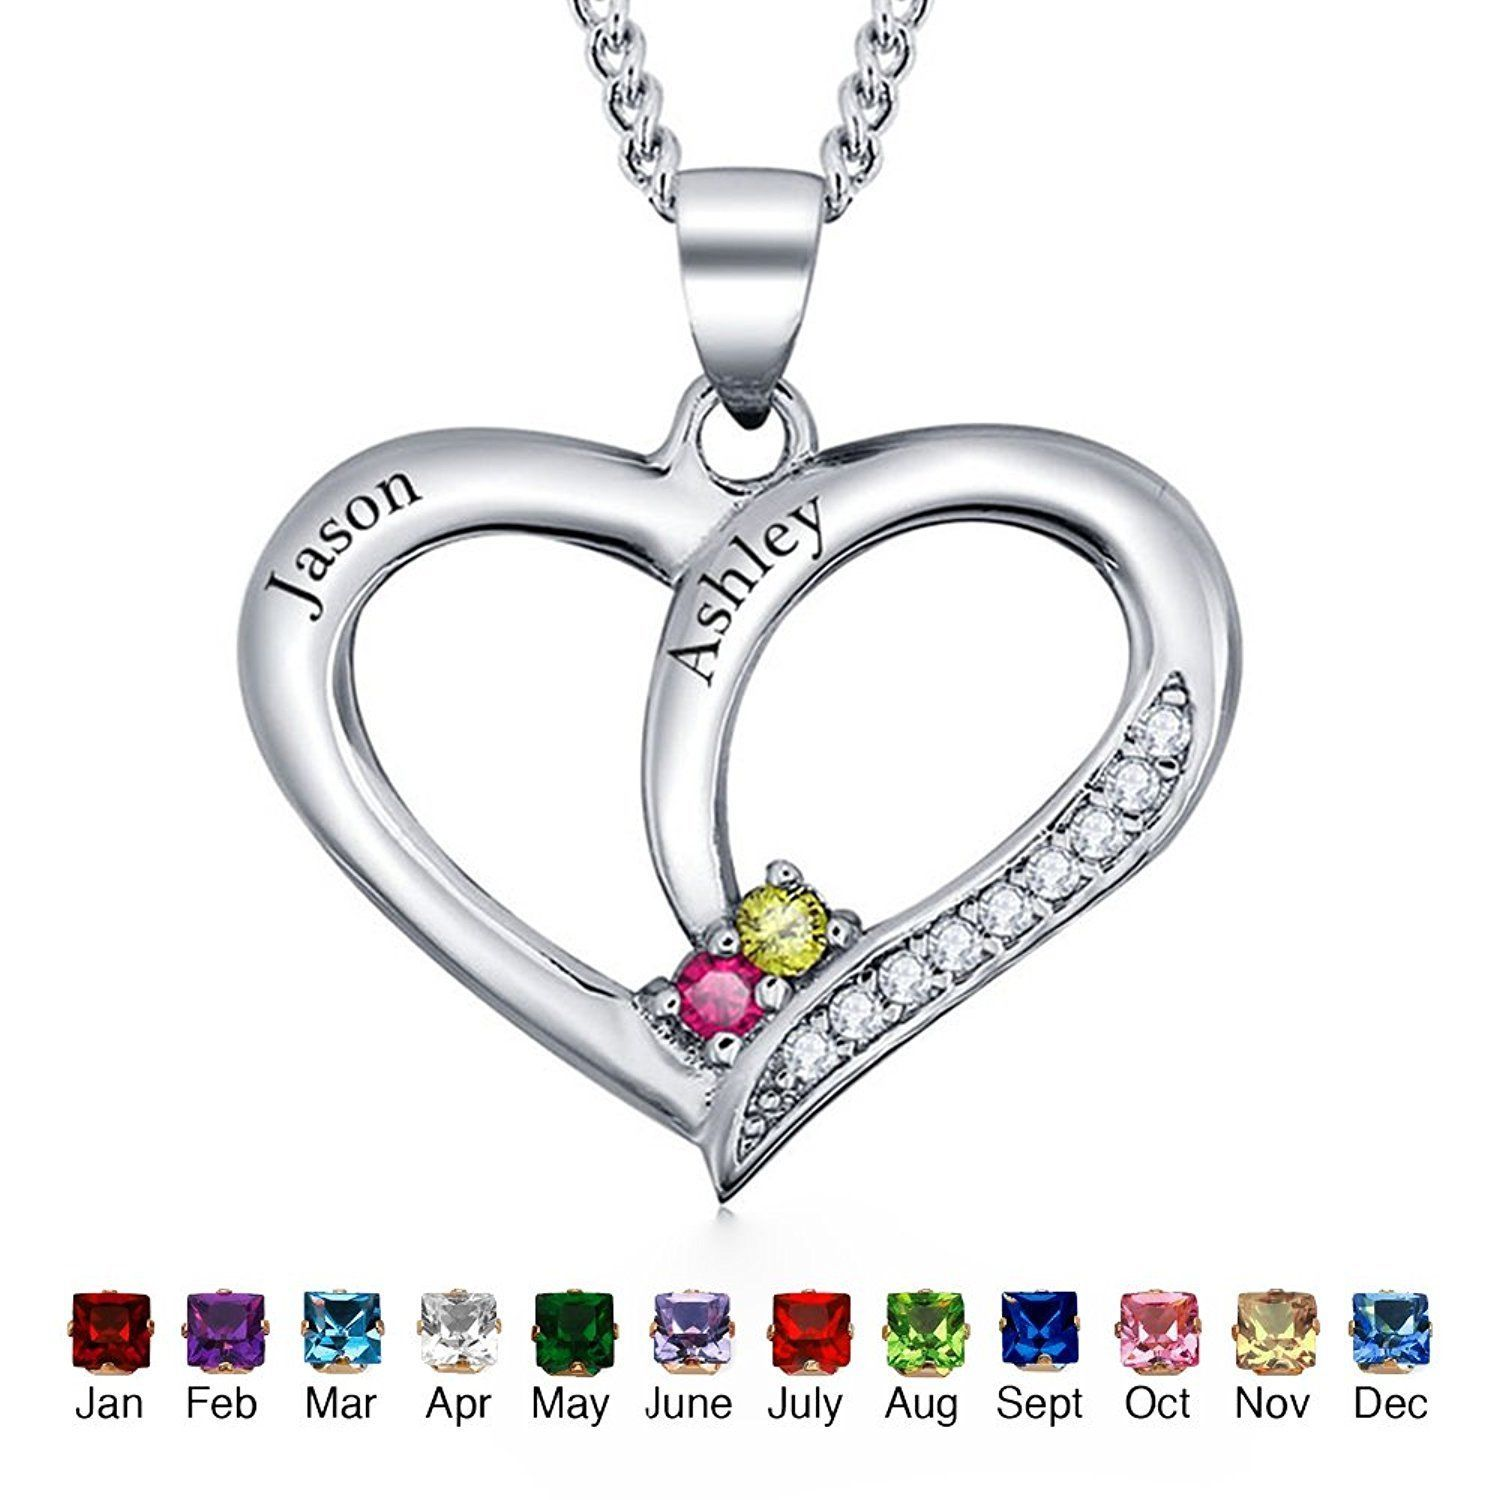 3ed22070976ec Personalized Heart Necklaces Engrave Names Birthstone Promise ...